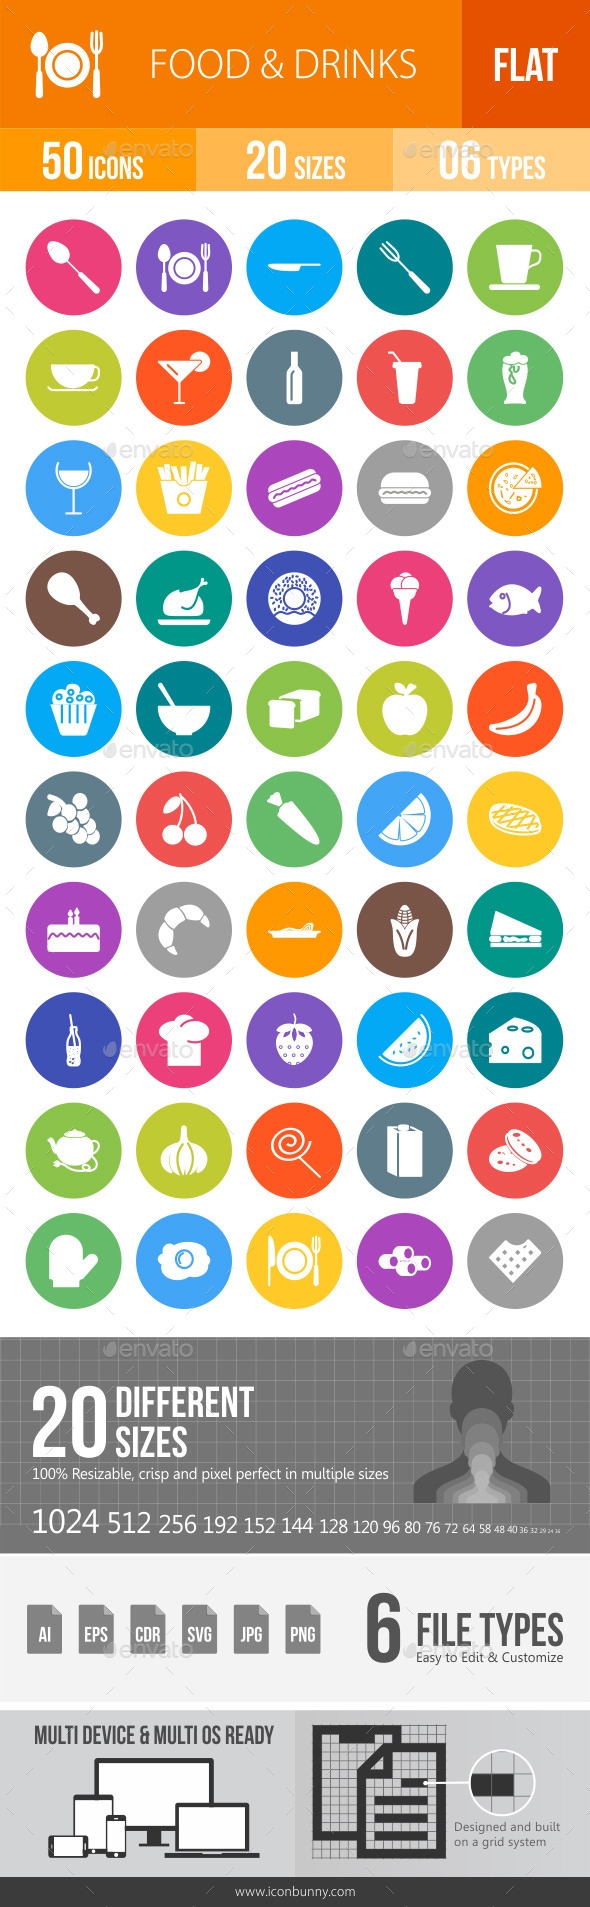 Food & Drinks Flat Round Icons - Icons